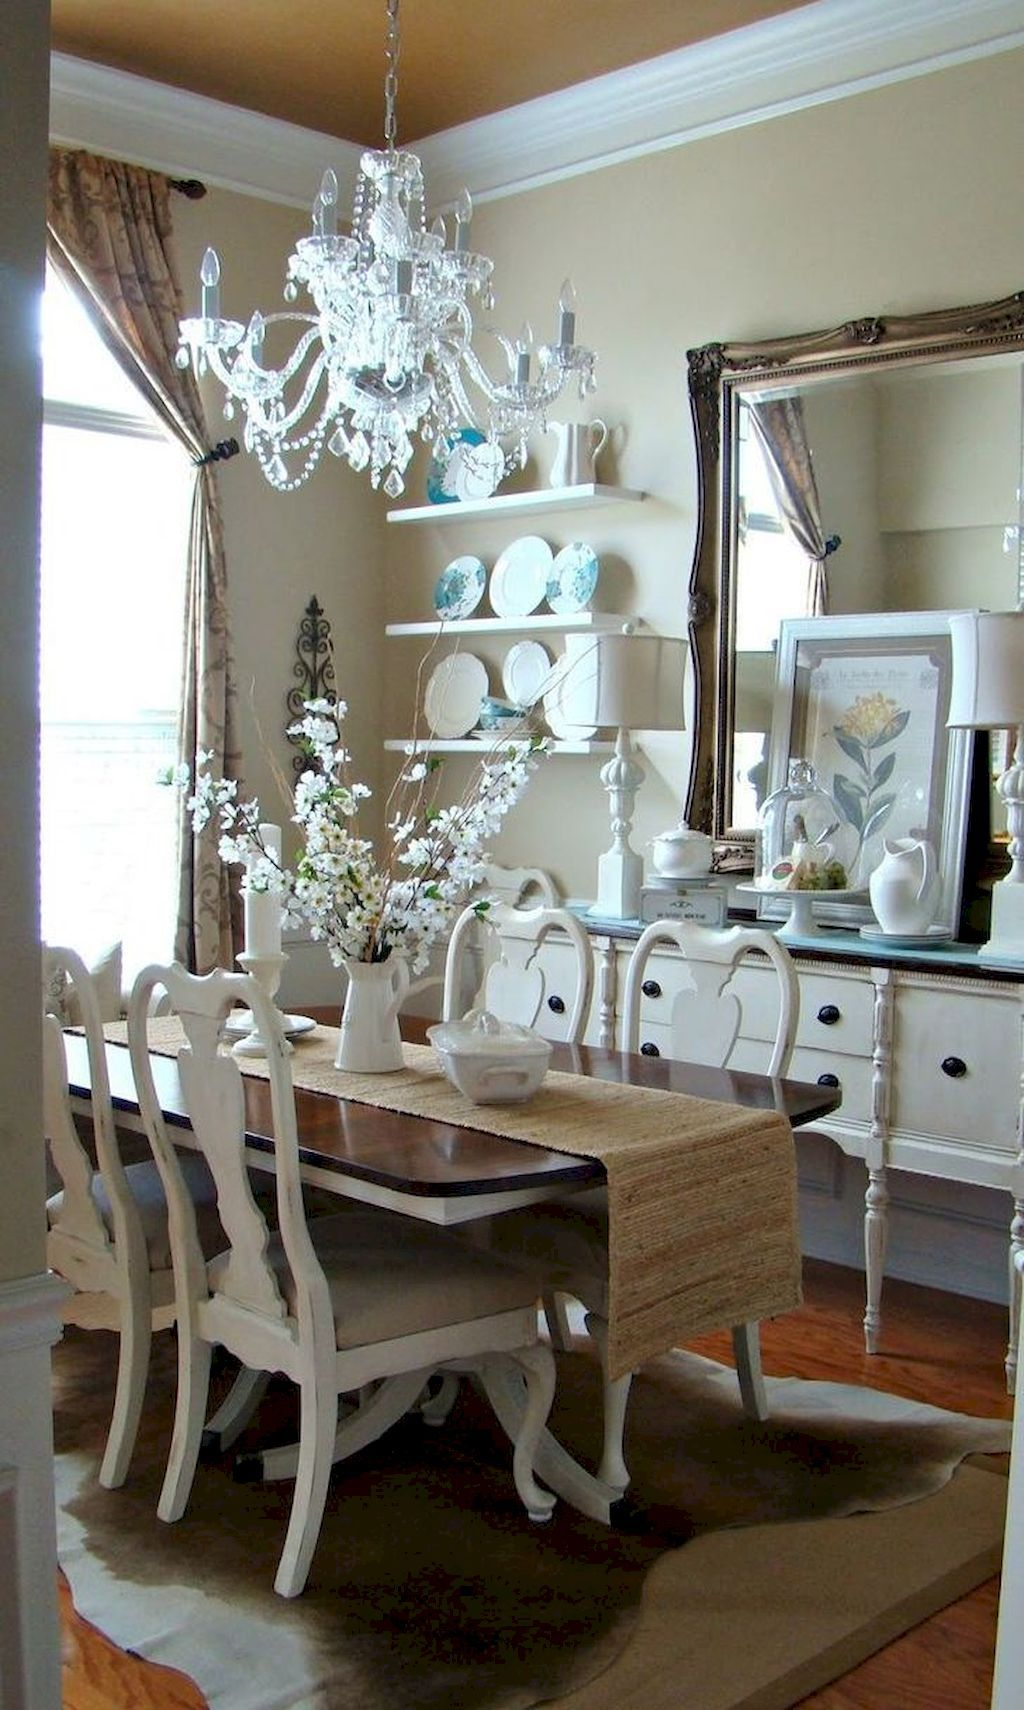 55 Modern French Country Dining Room Table Decor Ideas  Dining Glamorous French Country Dining Room Decorating Ideas Decorating Inspiration